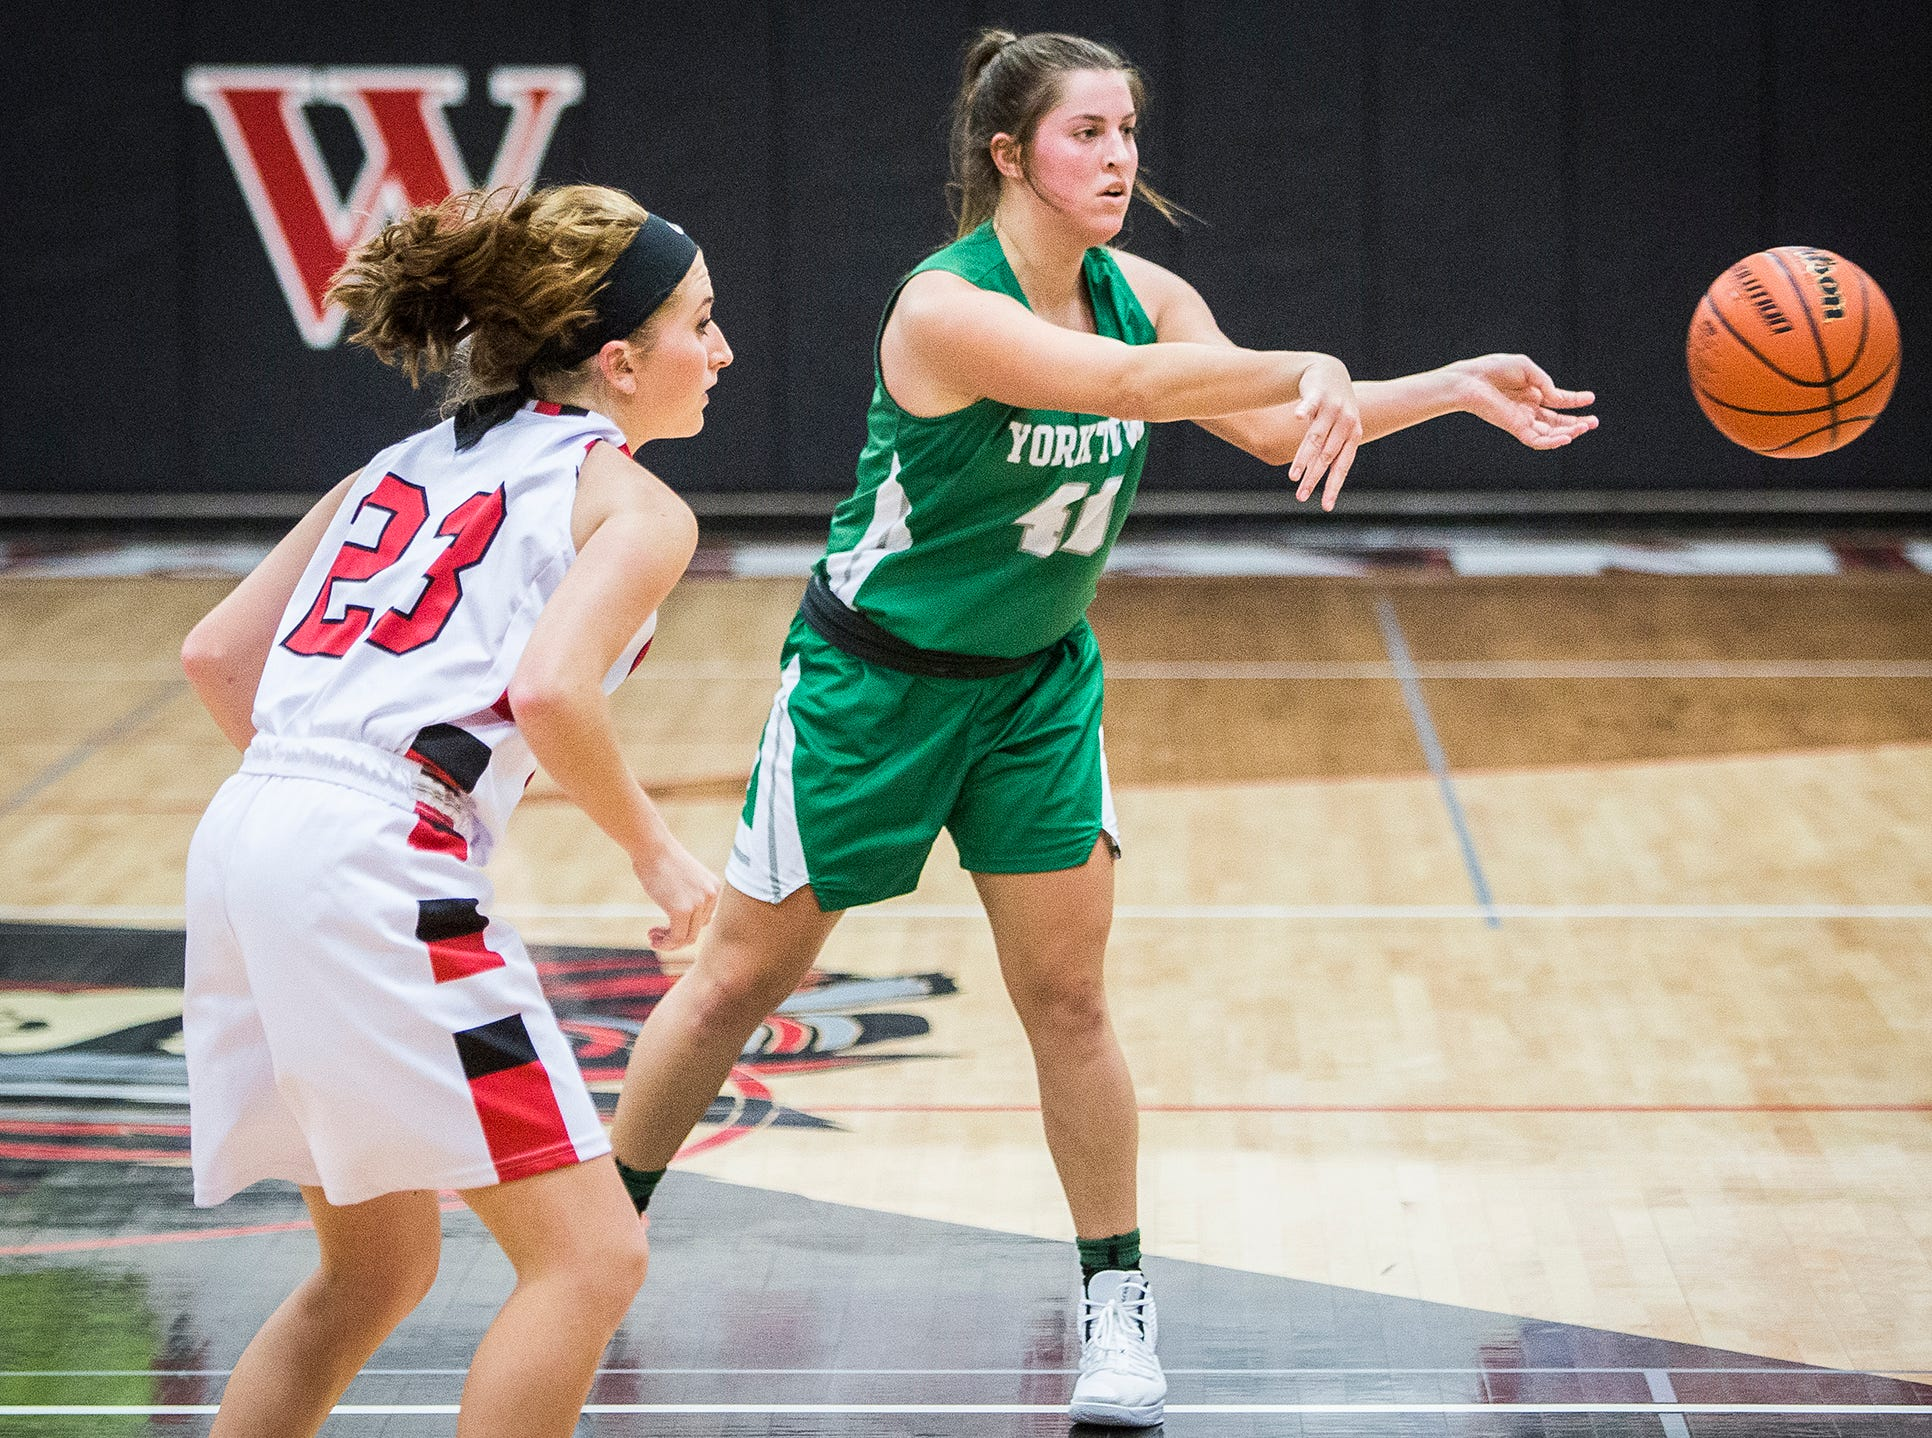 Yorktown's Ellie Miller reverses the ball against Wapahani during their game at Wapahani High School Tuesday, Dec. 4, 2018.